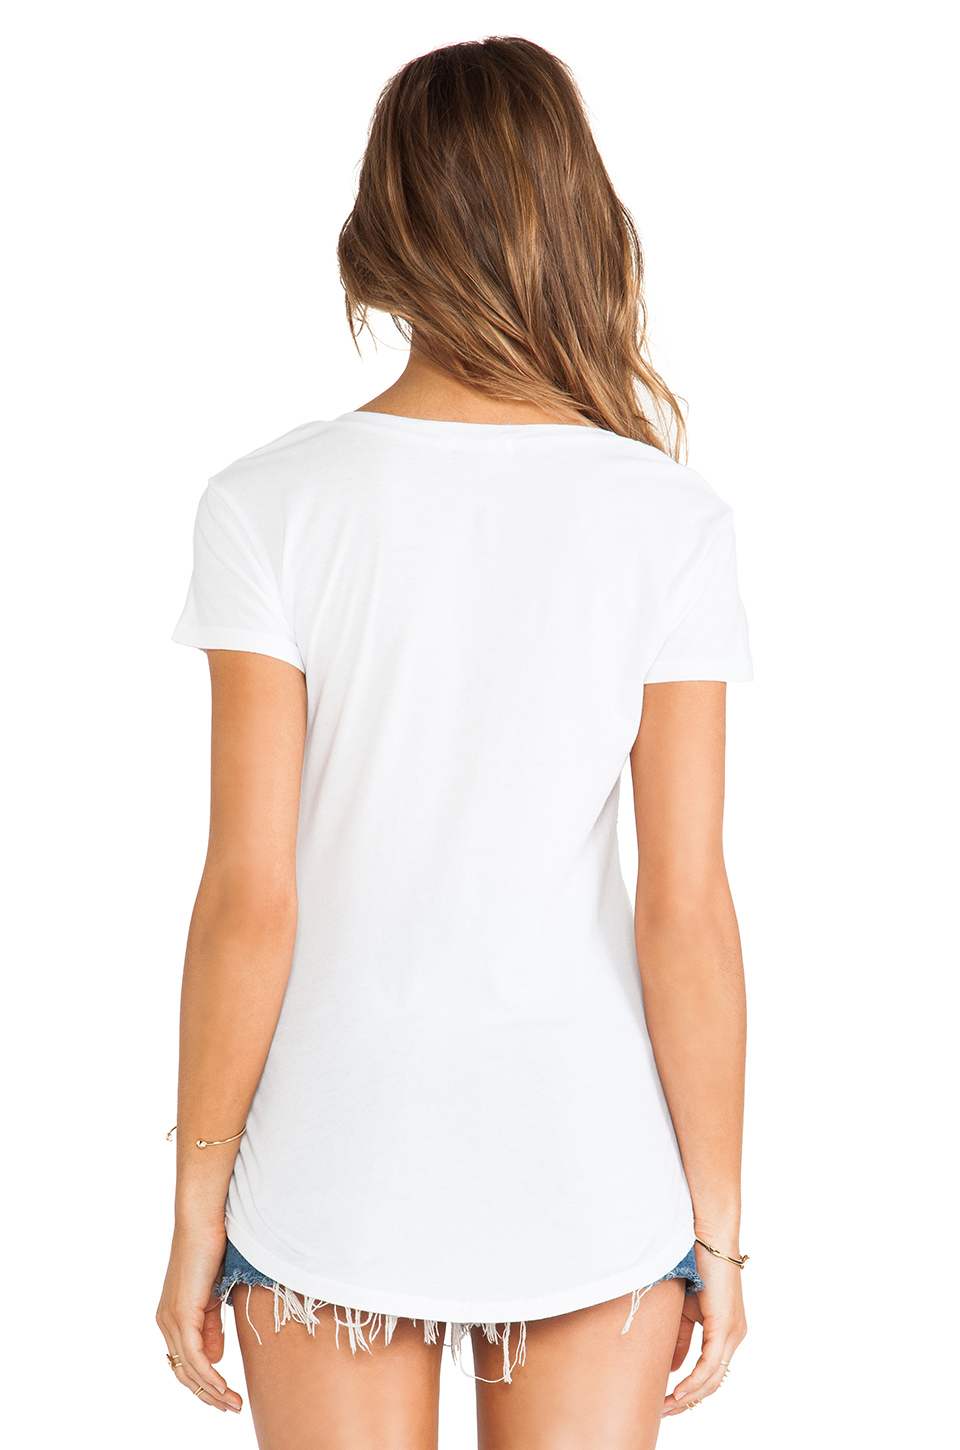 LA Made V Pocket Tee in White